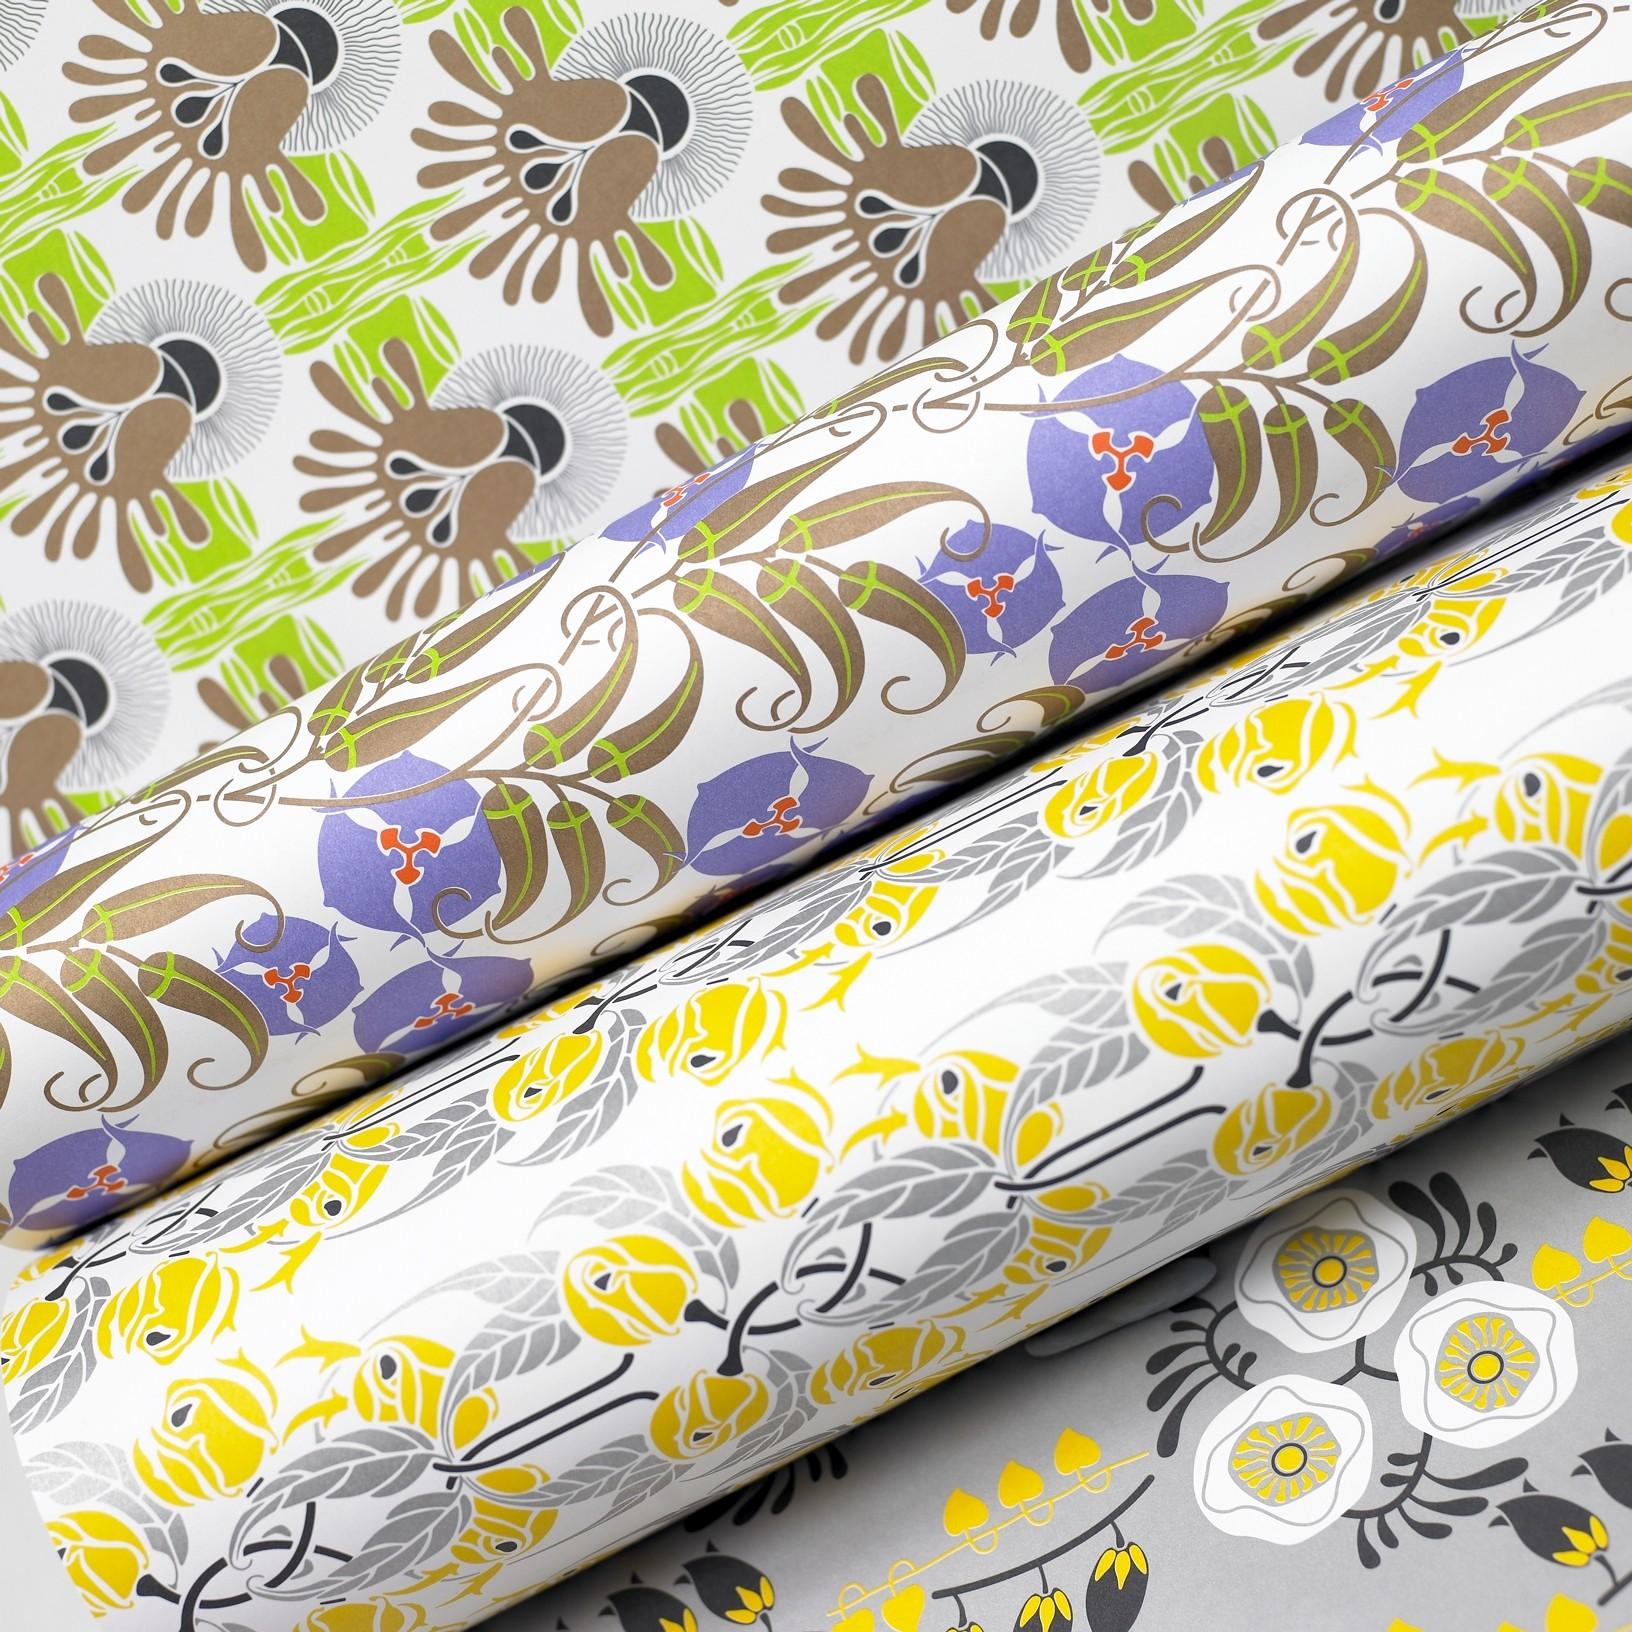 fancy wrapping paper Online shopping from a great selection at toys store store.